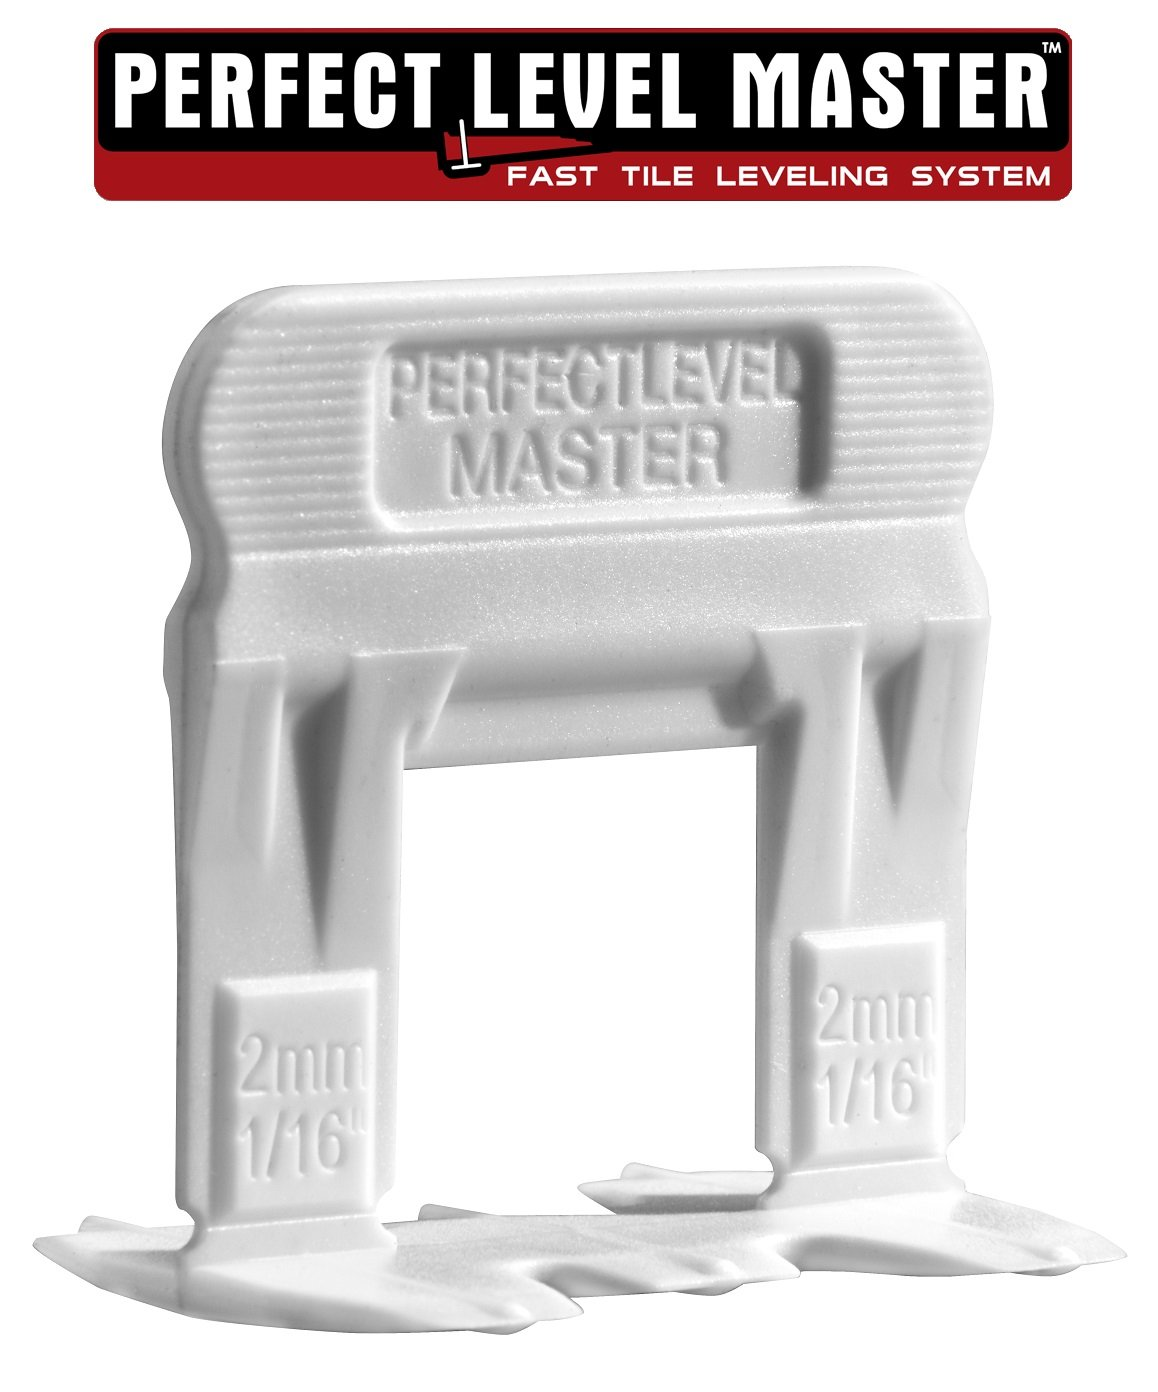 T-Lock ™ 1/16'' (2mm) 1500 Clips '' PERFECT LEVEL MASTER ™ Professional '' Anti lippage '' Tile leveling system - (spacers only), Red wedges not included and sold separately!